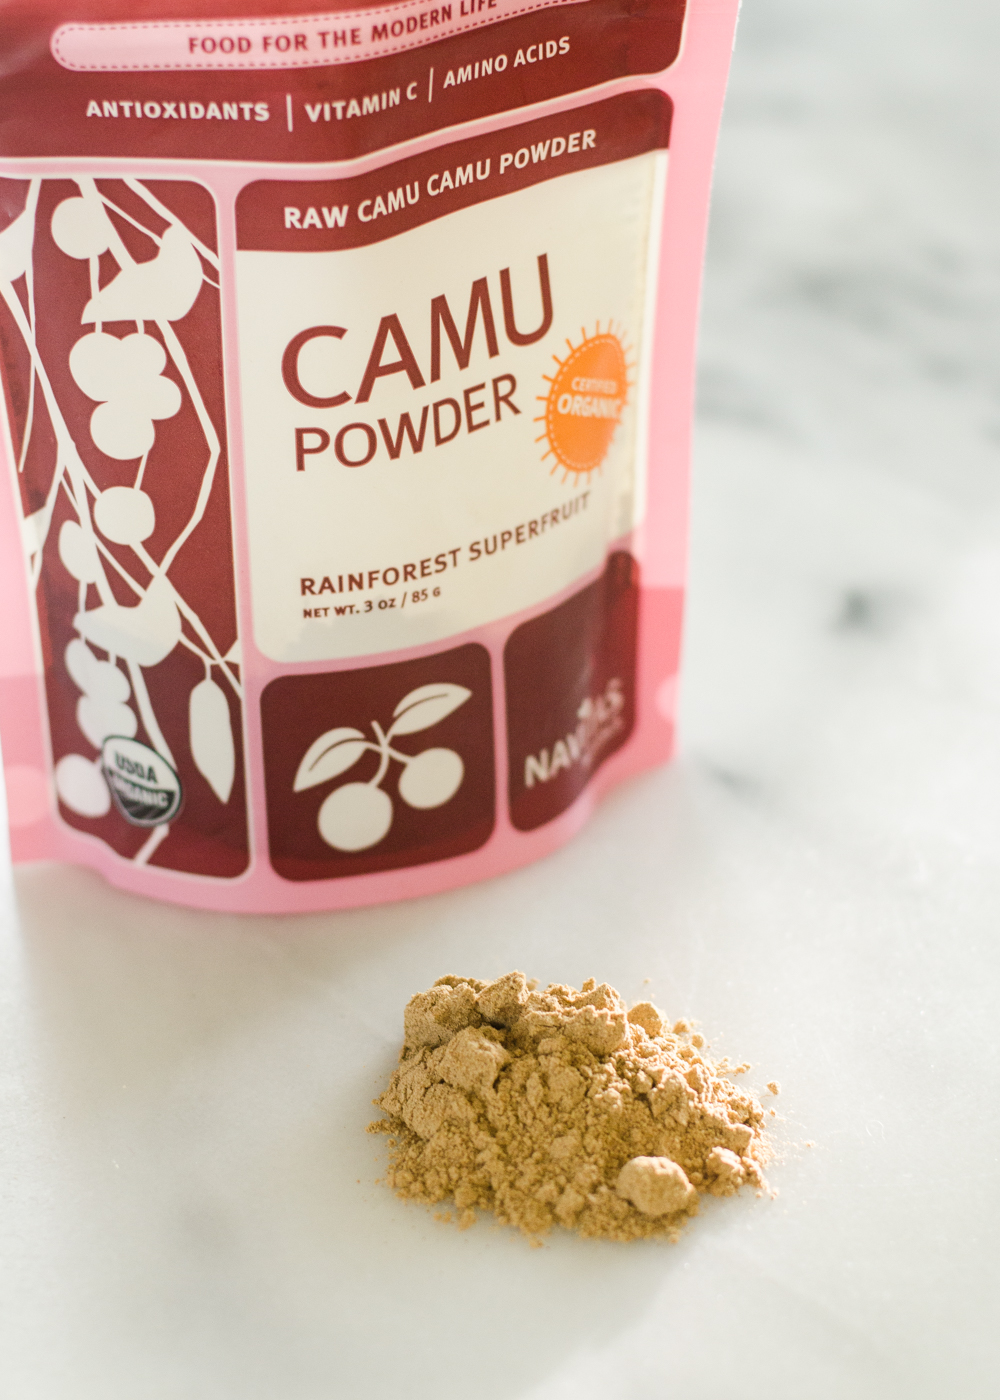 Camu Camu Powder 101